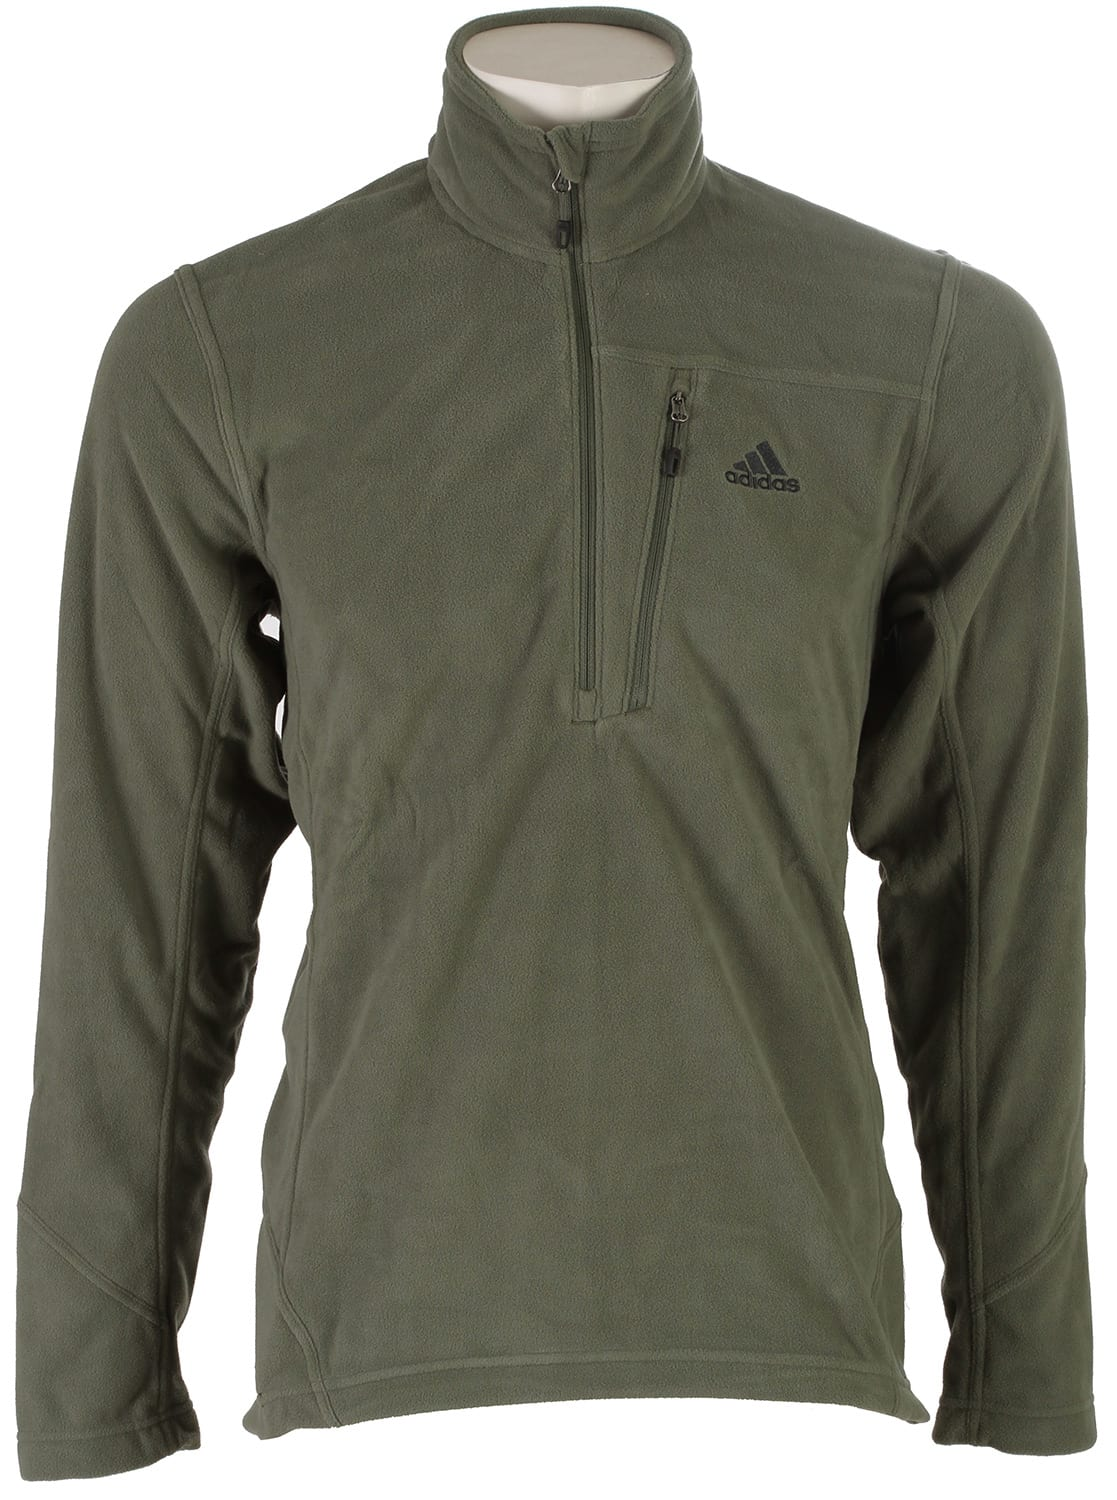 on sale adidas hiking reachout pullover fleece up to 50 off. Black Bedroom Furniture Sets. Home Design Ideas